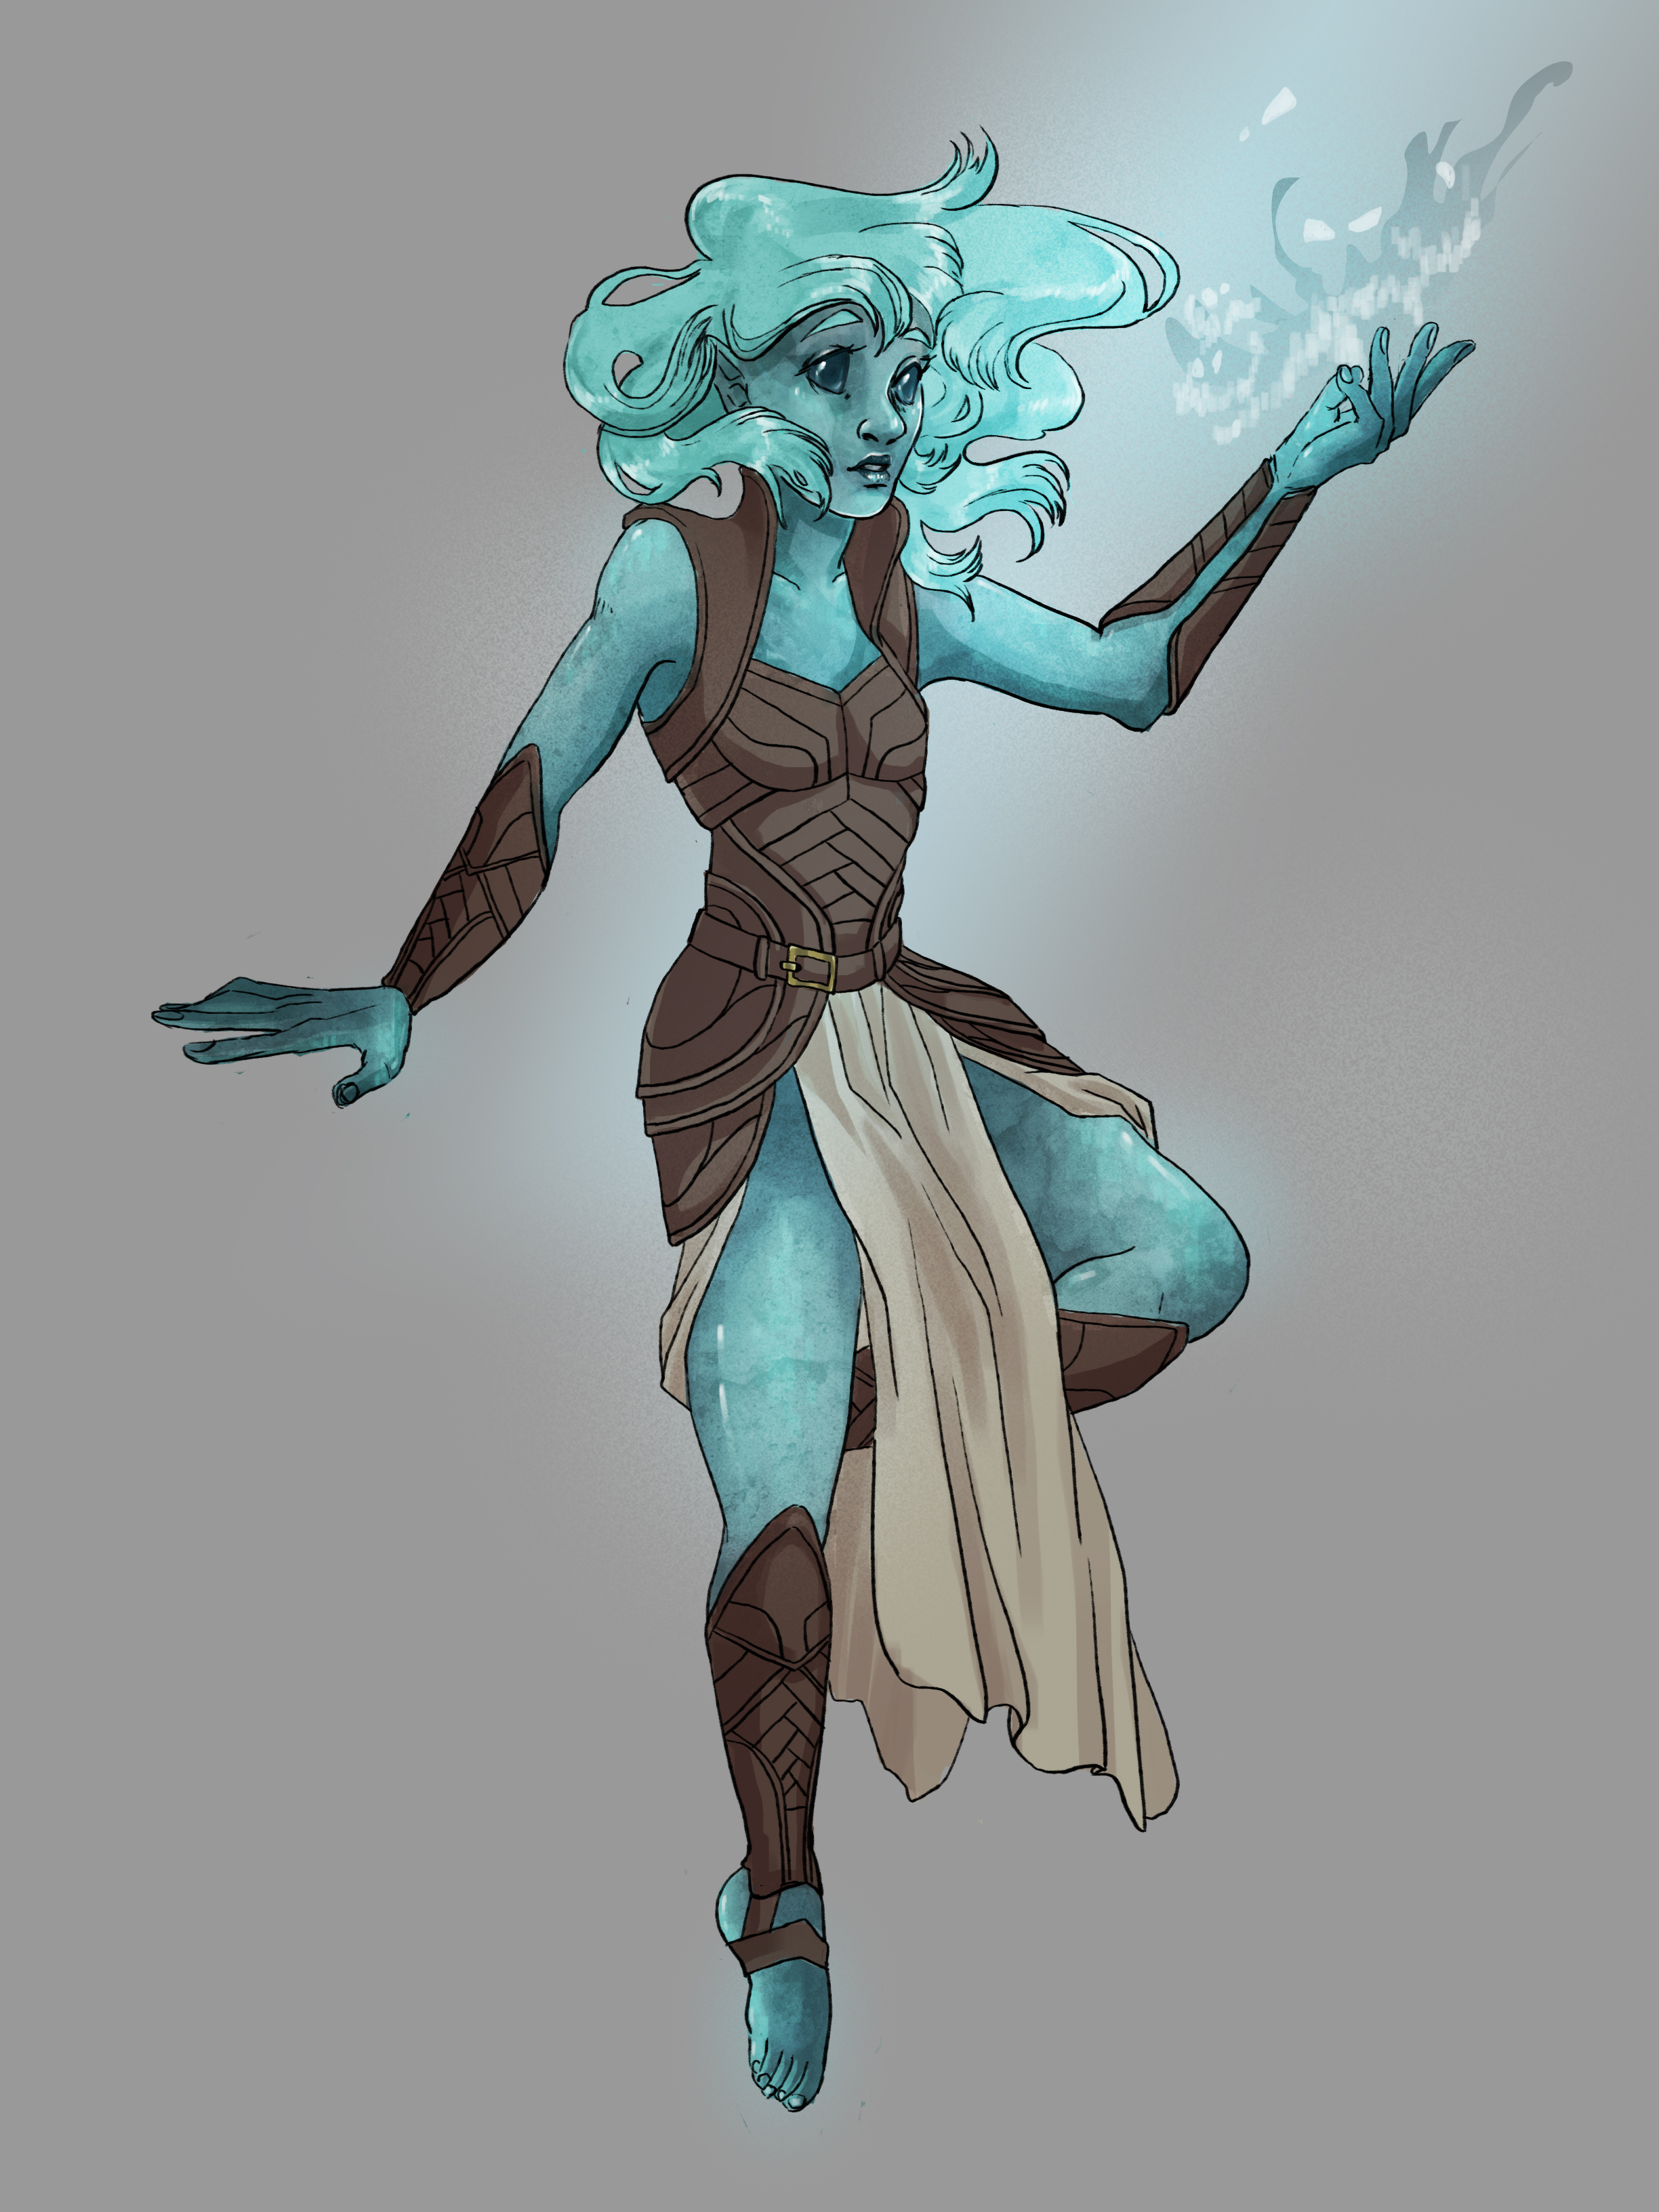 Photoshop drawing of D&D character